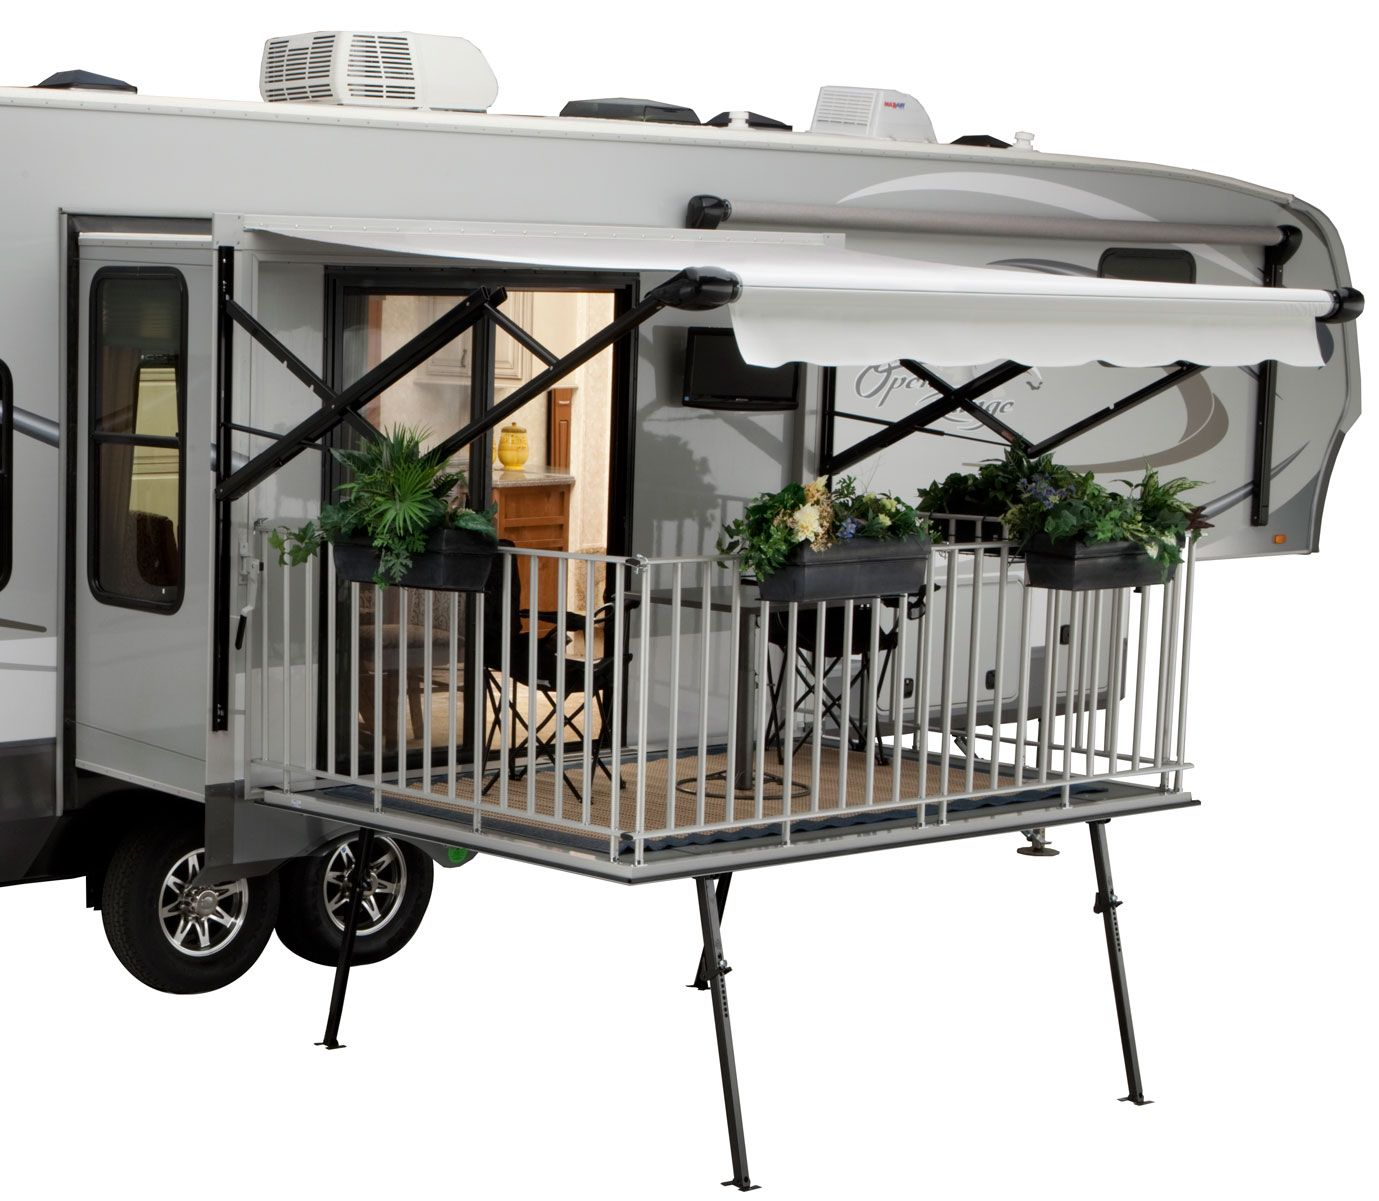 The Open Range 3x Photo Gallery By Highland Ridge Rv Inc Open Range Rv Rv Campers Open Range